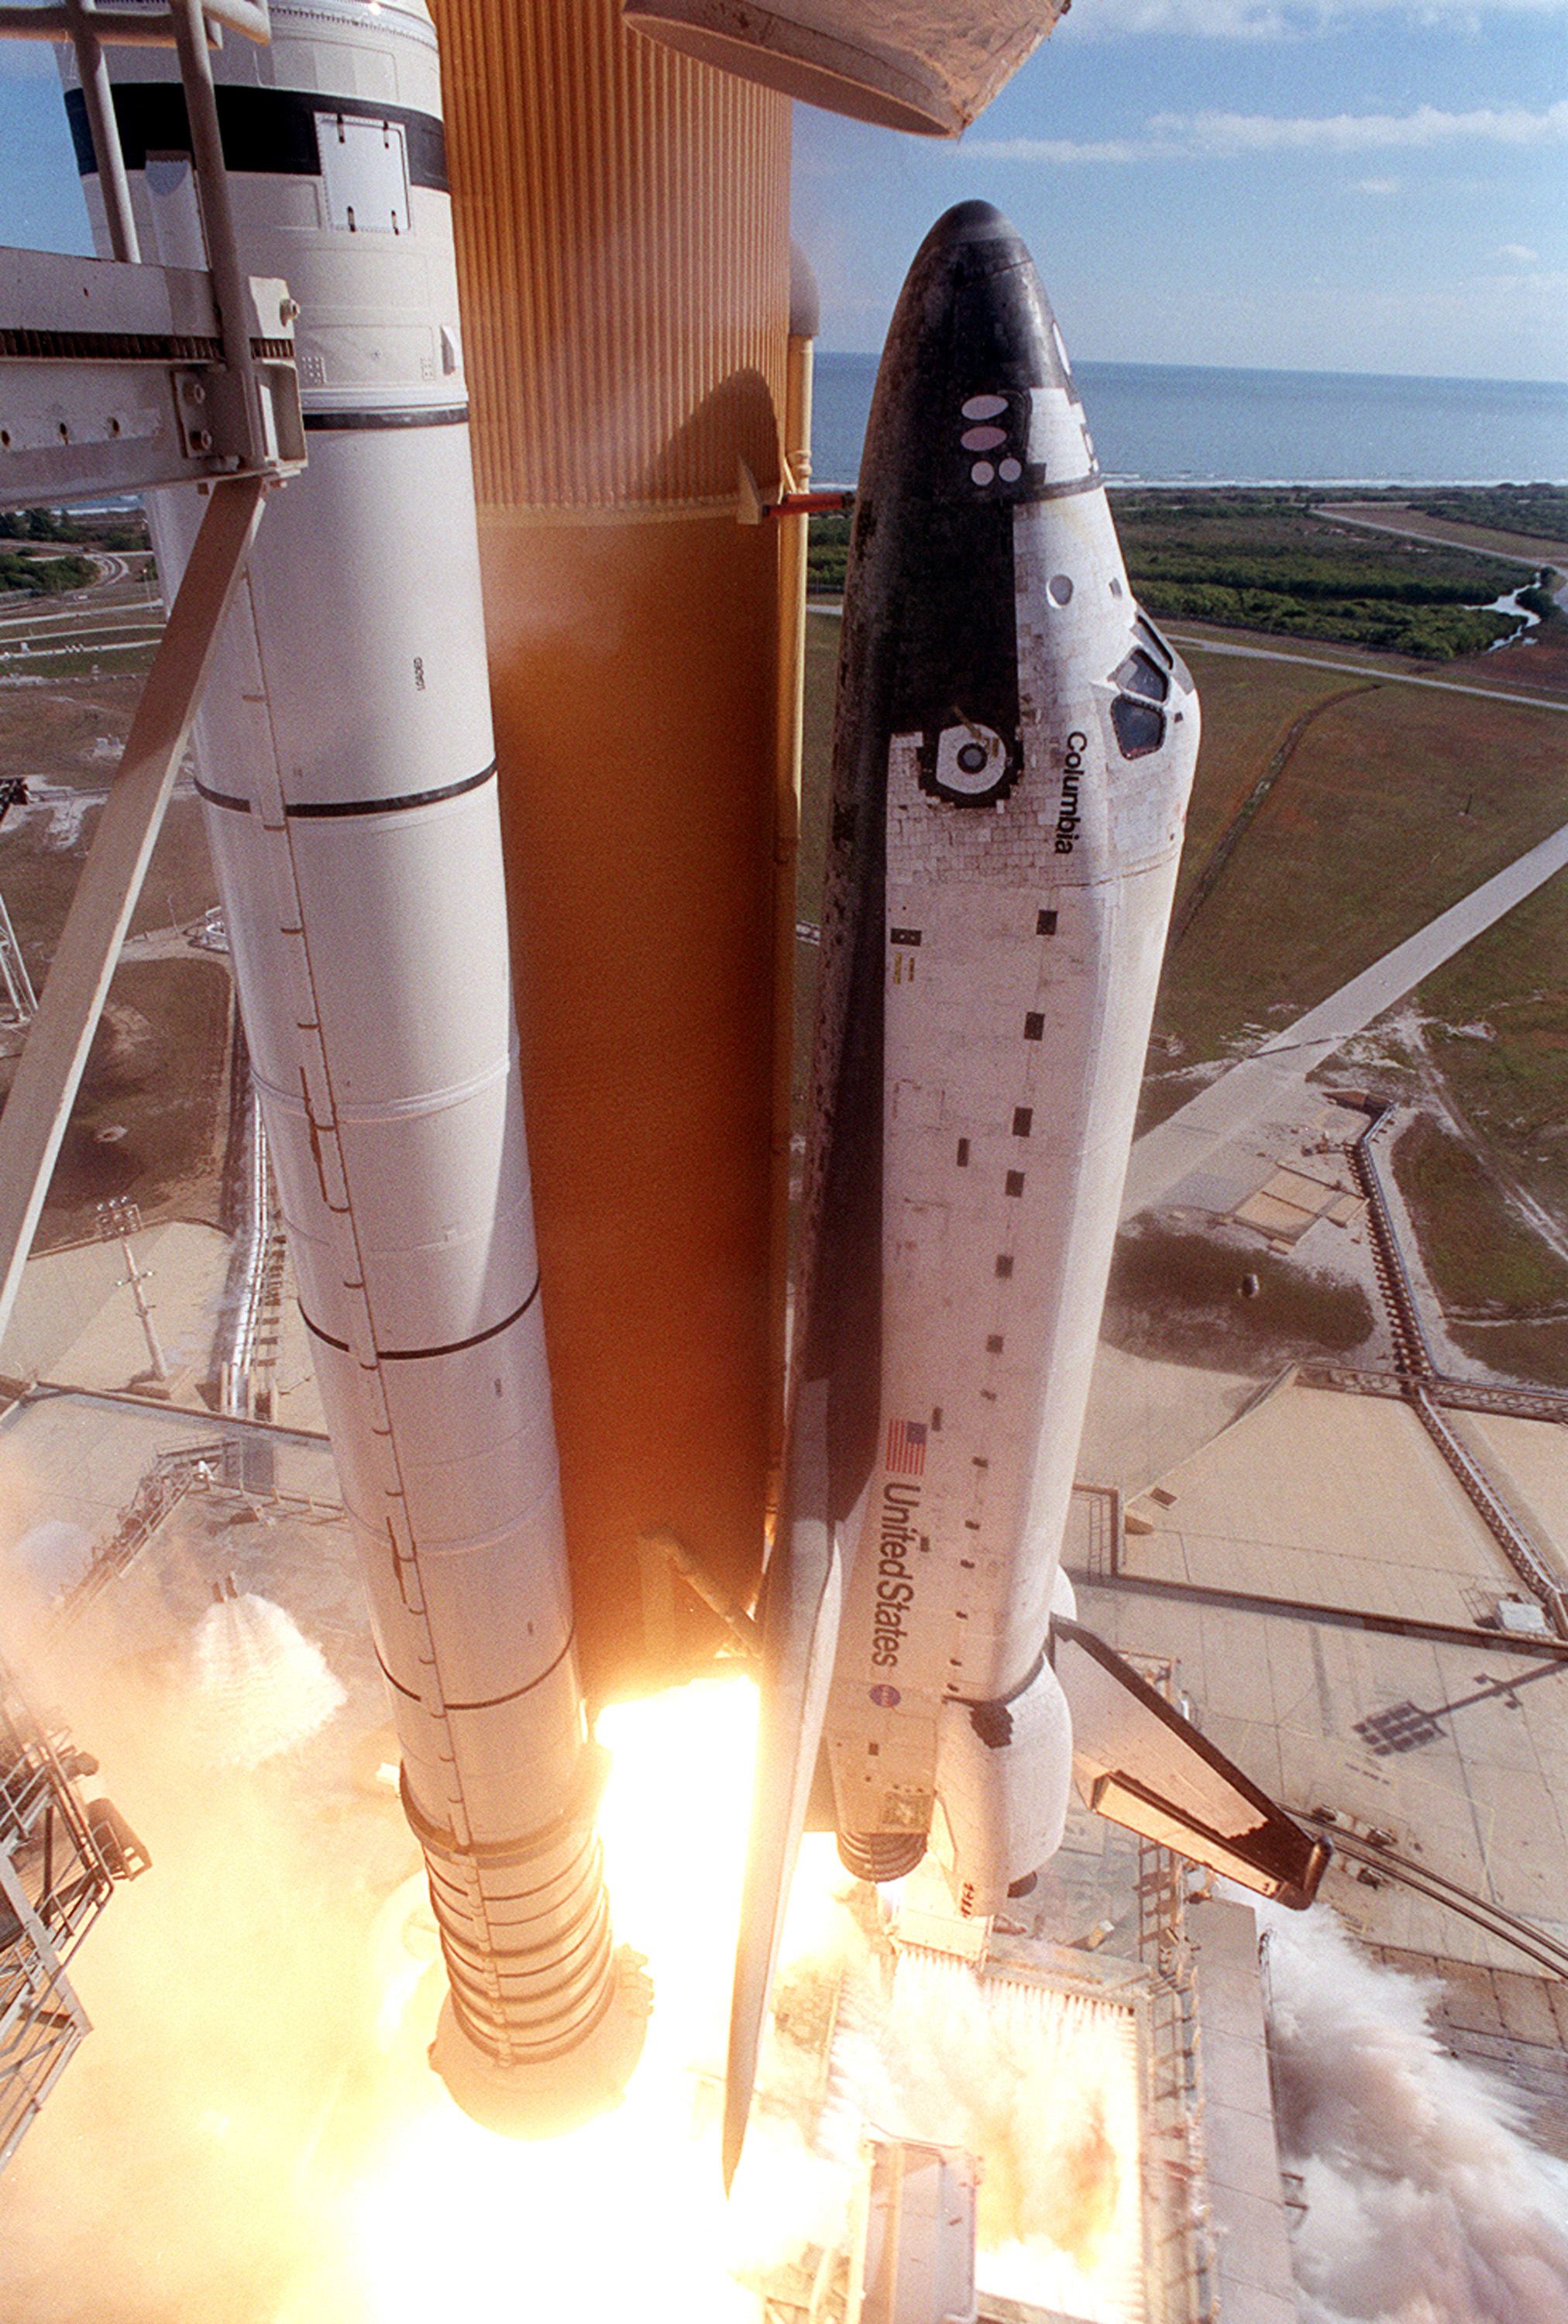 space shuttle columbia crash - photo #17